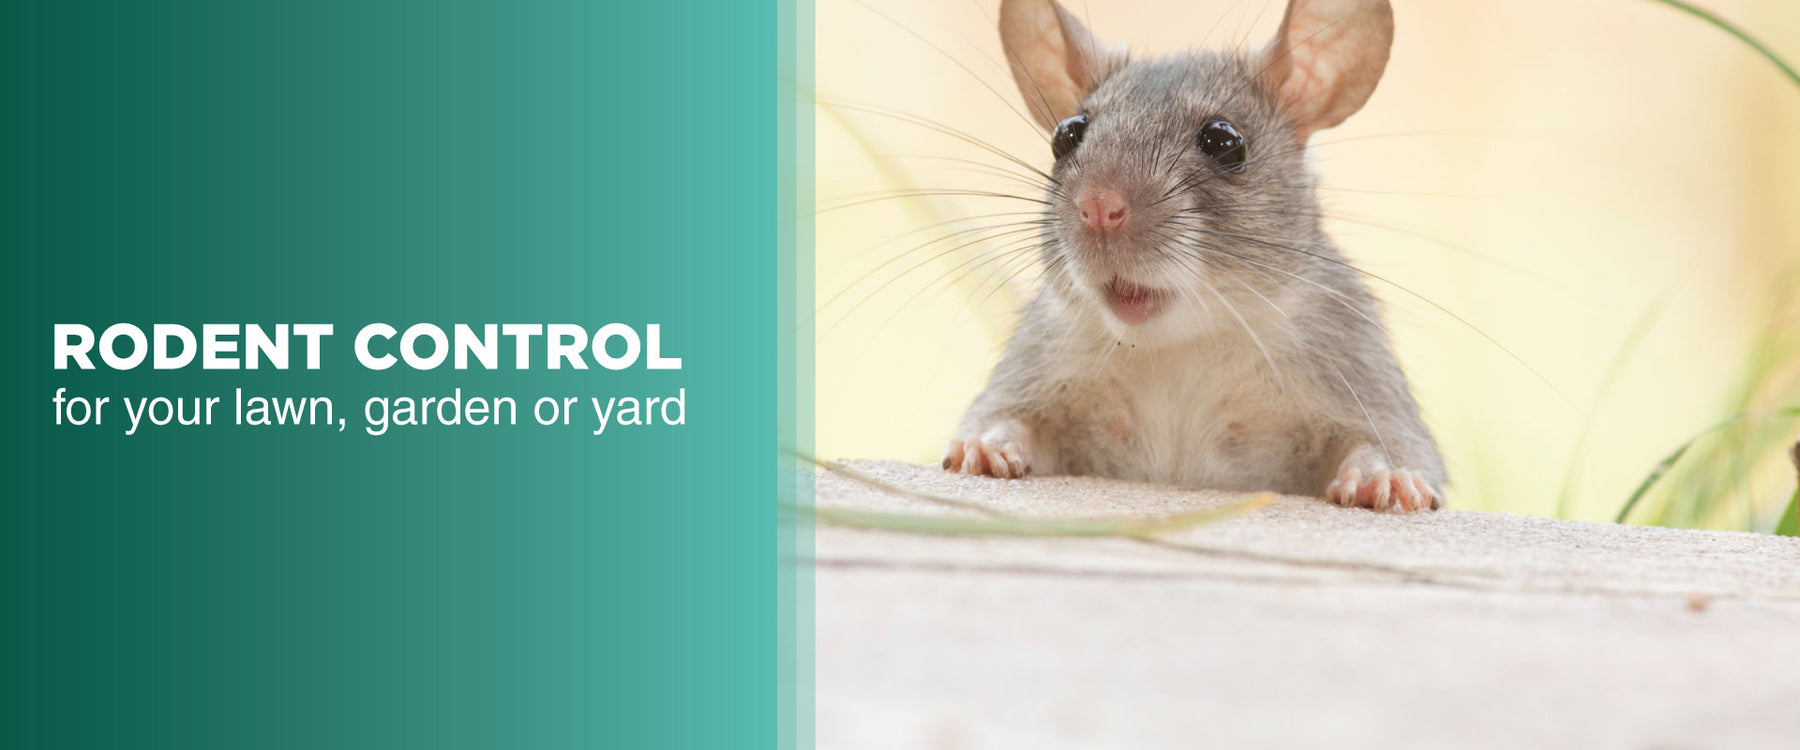 Steps to Rodent Proof Your Garden